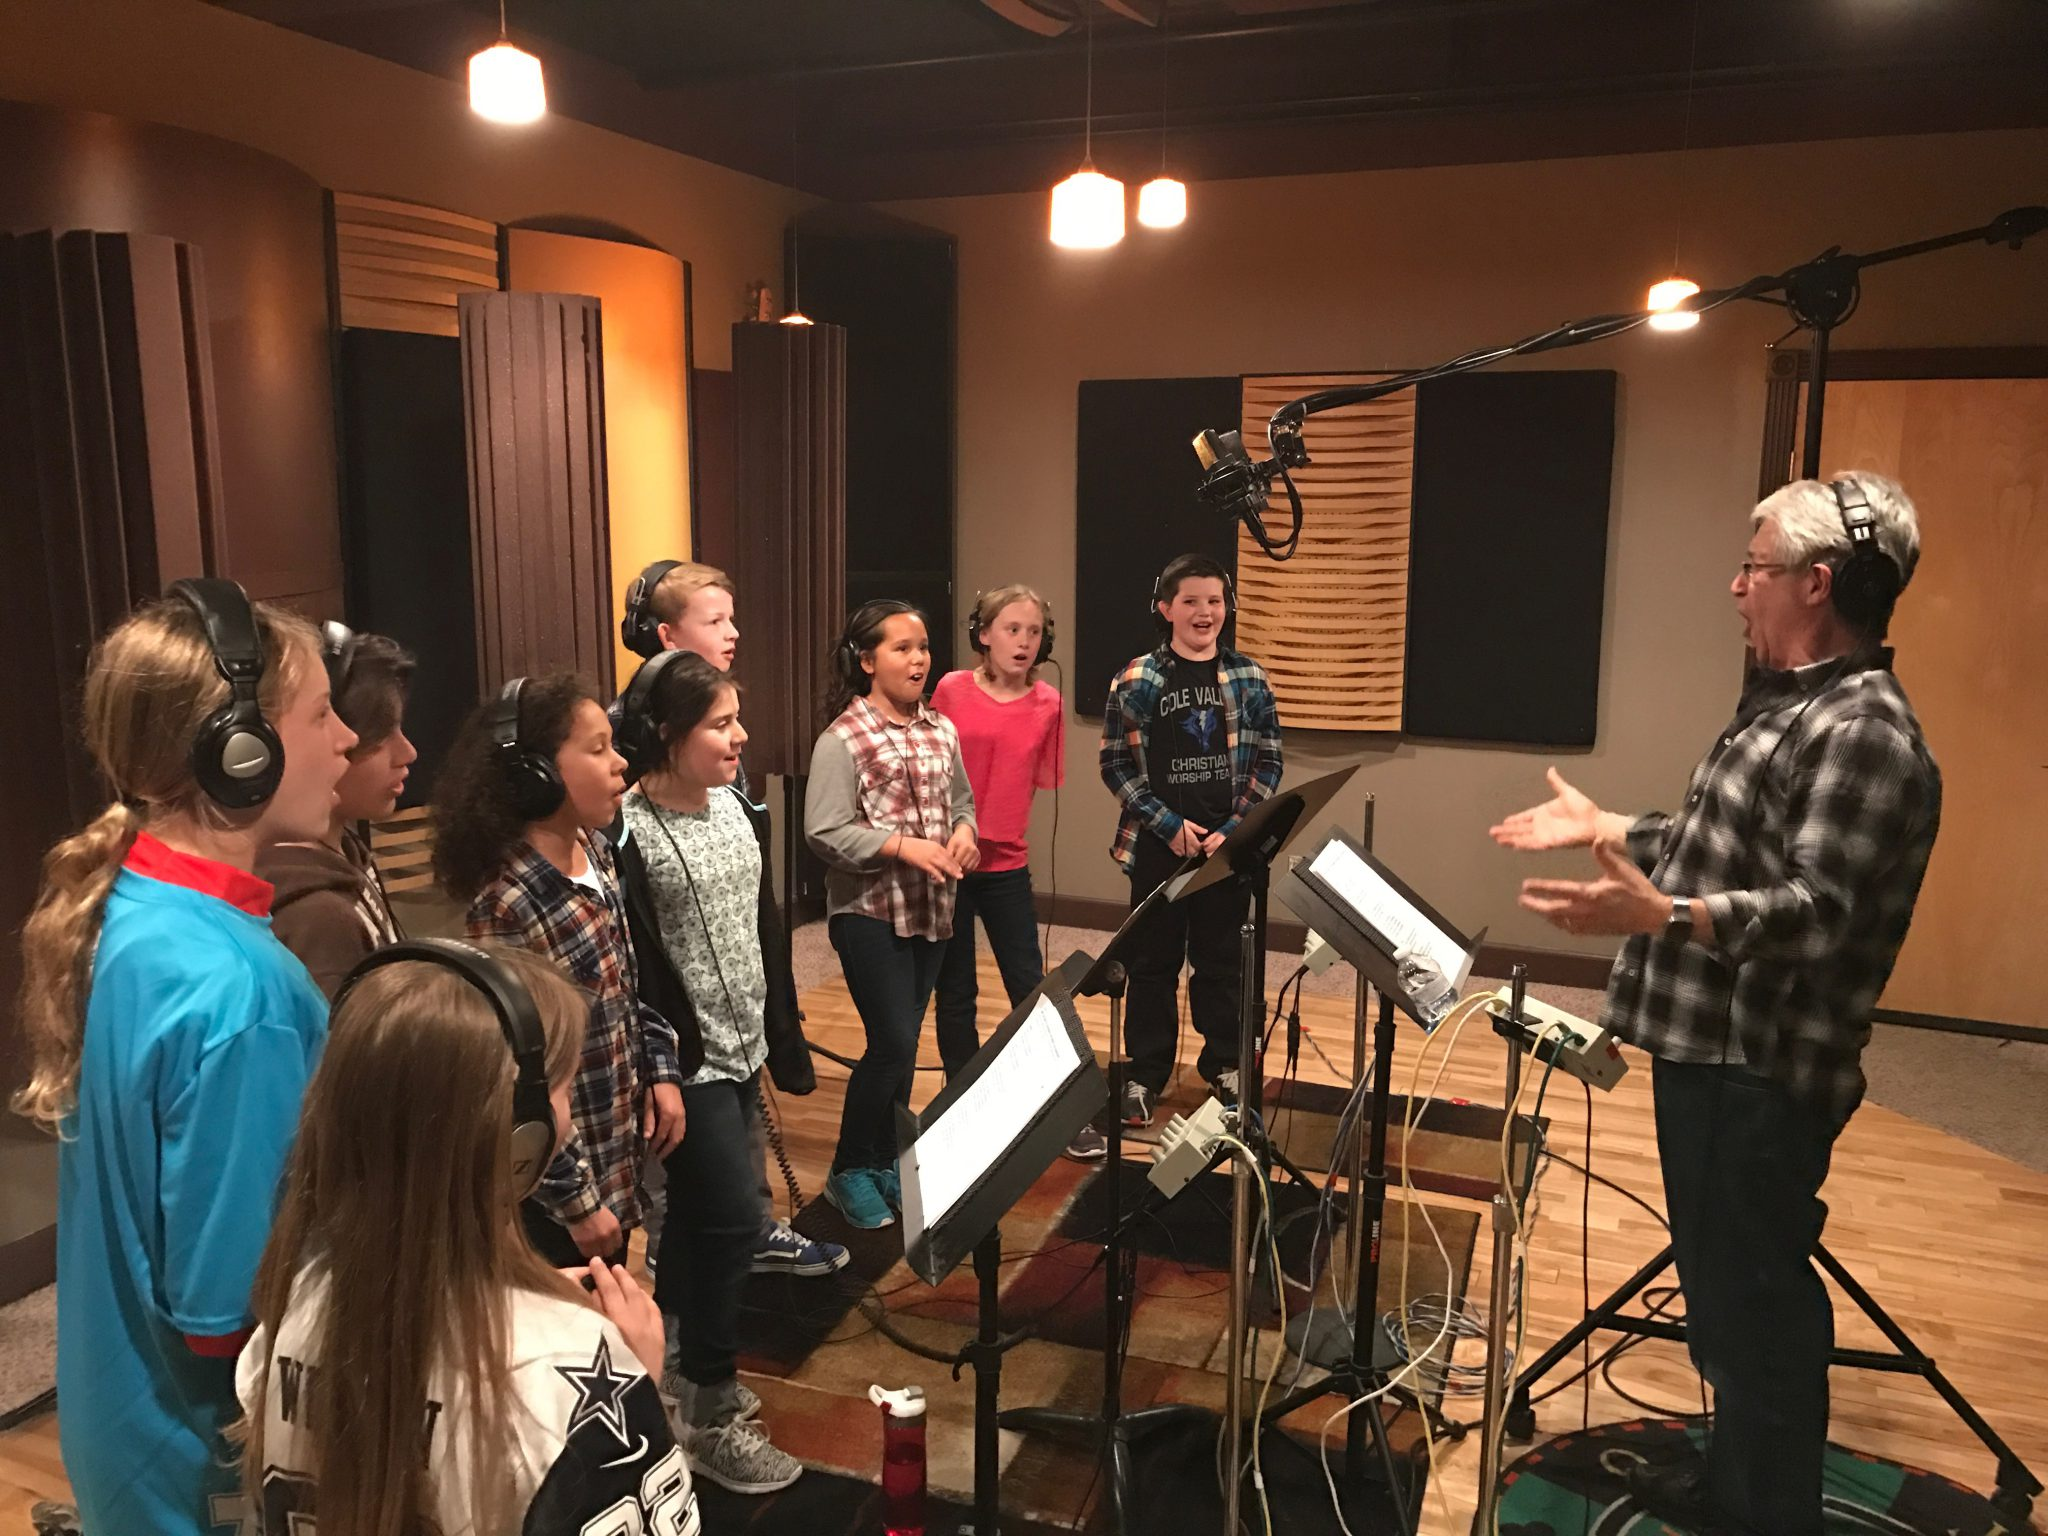 Introducing Songs from The New City Catechism